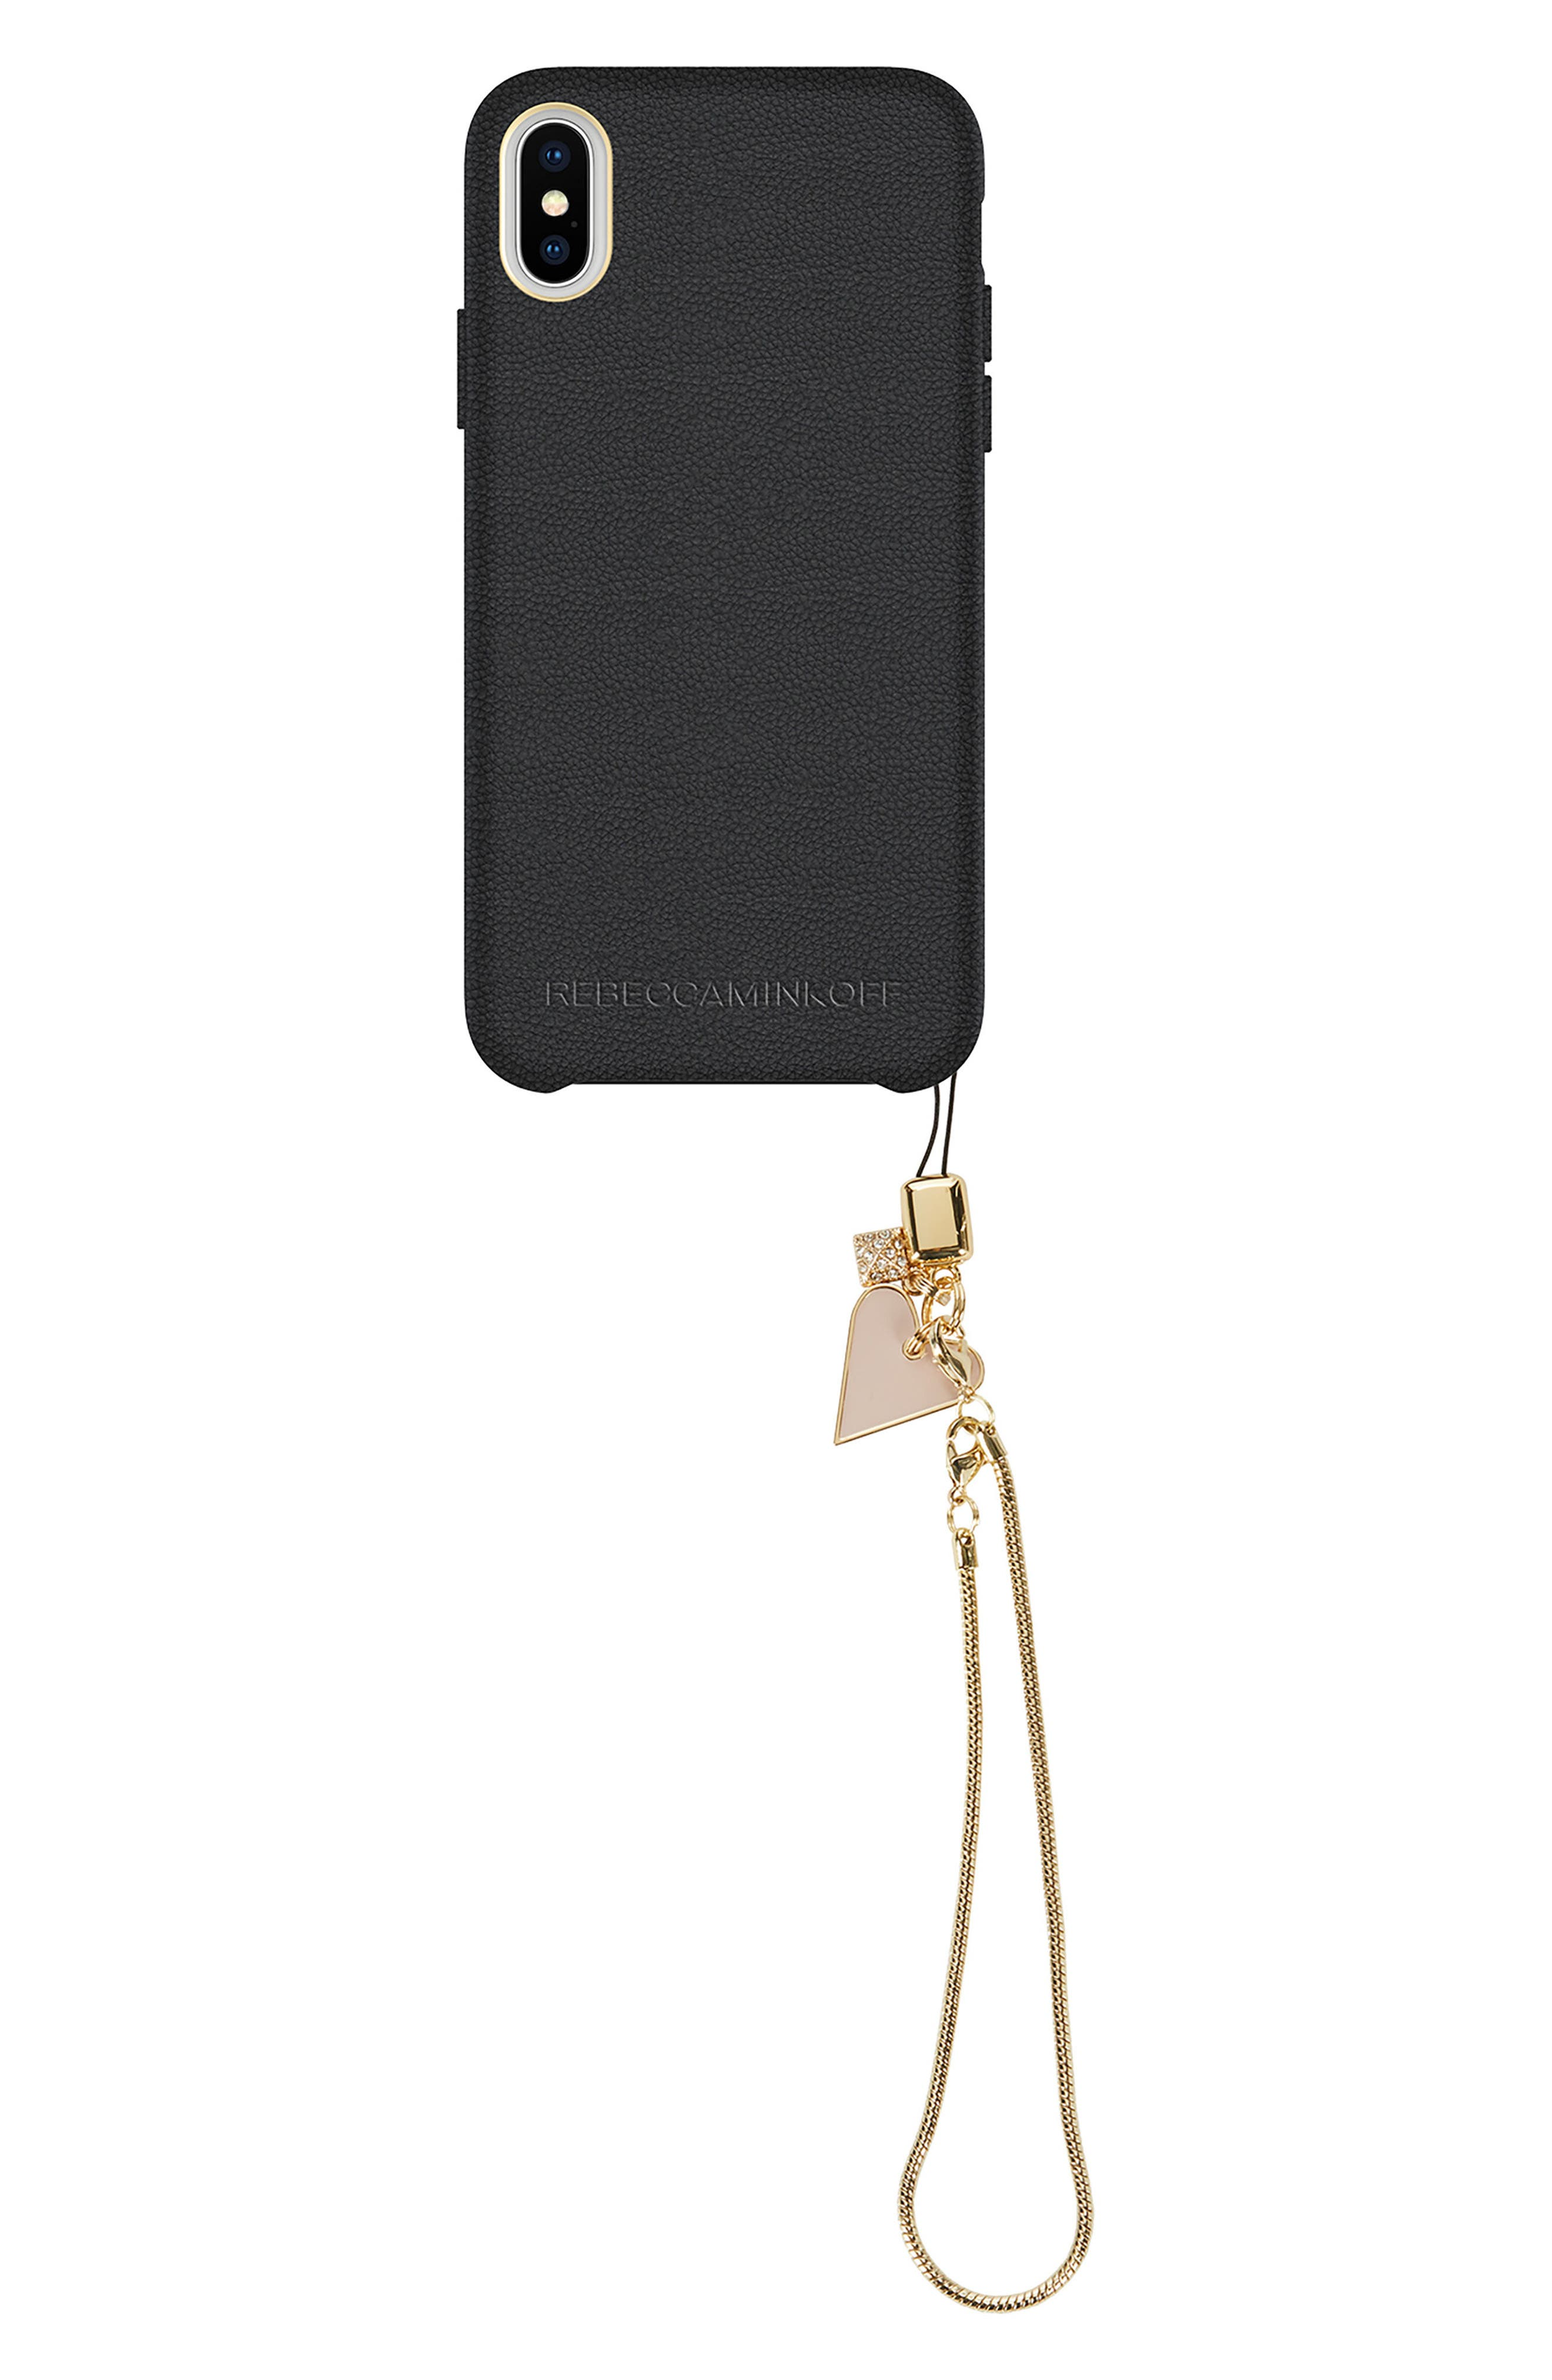 Leather iPhone X Wristlet Case with Charms,                             Main thumbnail 1, color,                             Black